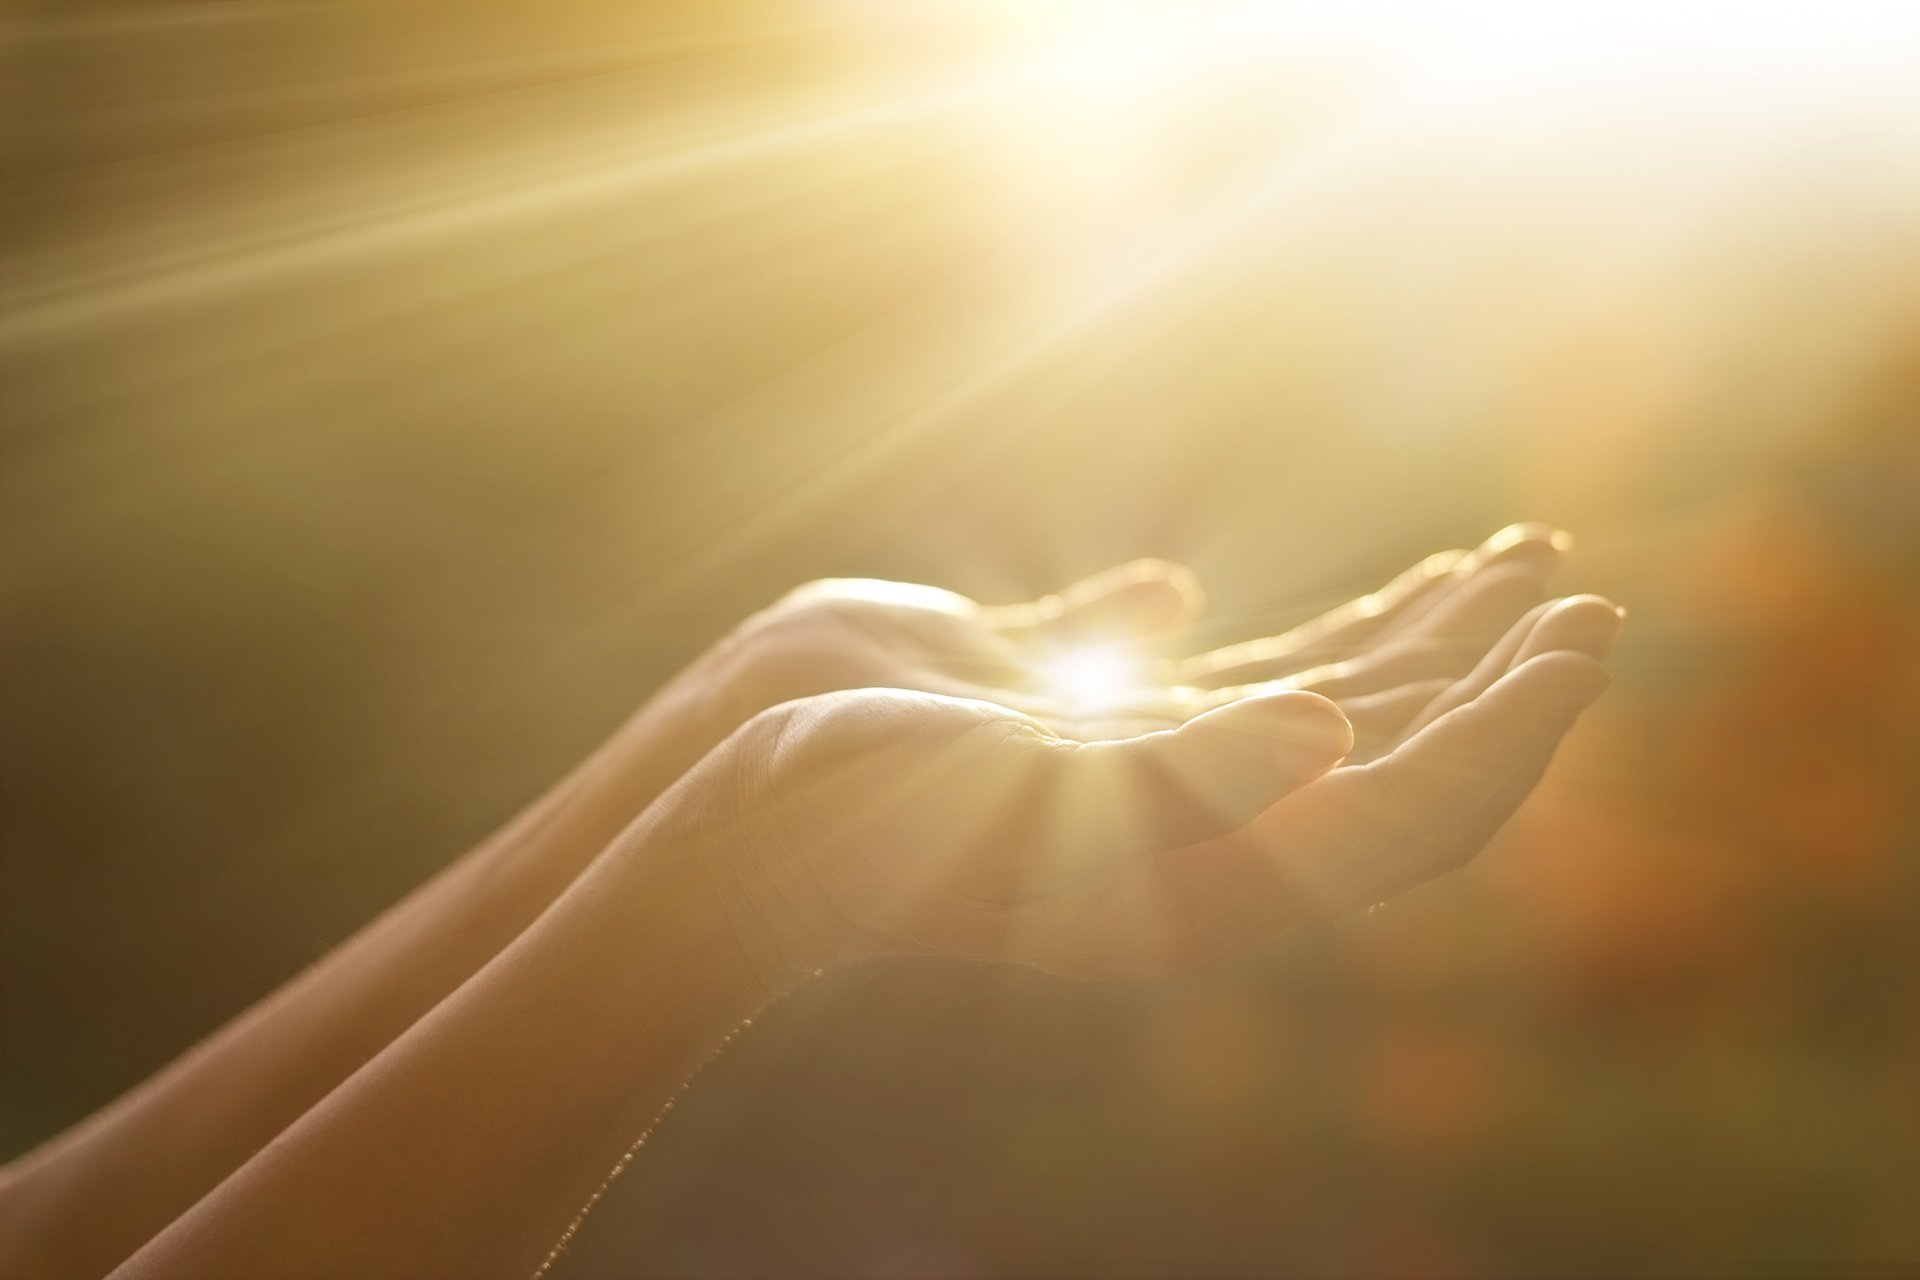 True Story: How I Became A Reiki Practitioner  Fascinated by the concept of universal energy and its ability to influence and heal, I decided to spend a weekend becoming a Reiki Level 1 and Level 2 Practitioner. Here's what happened.